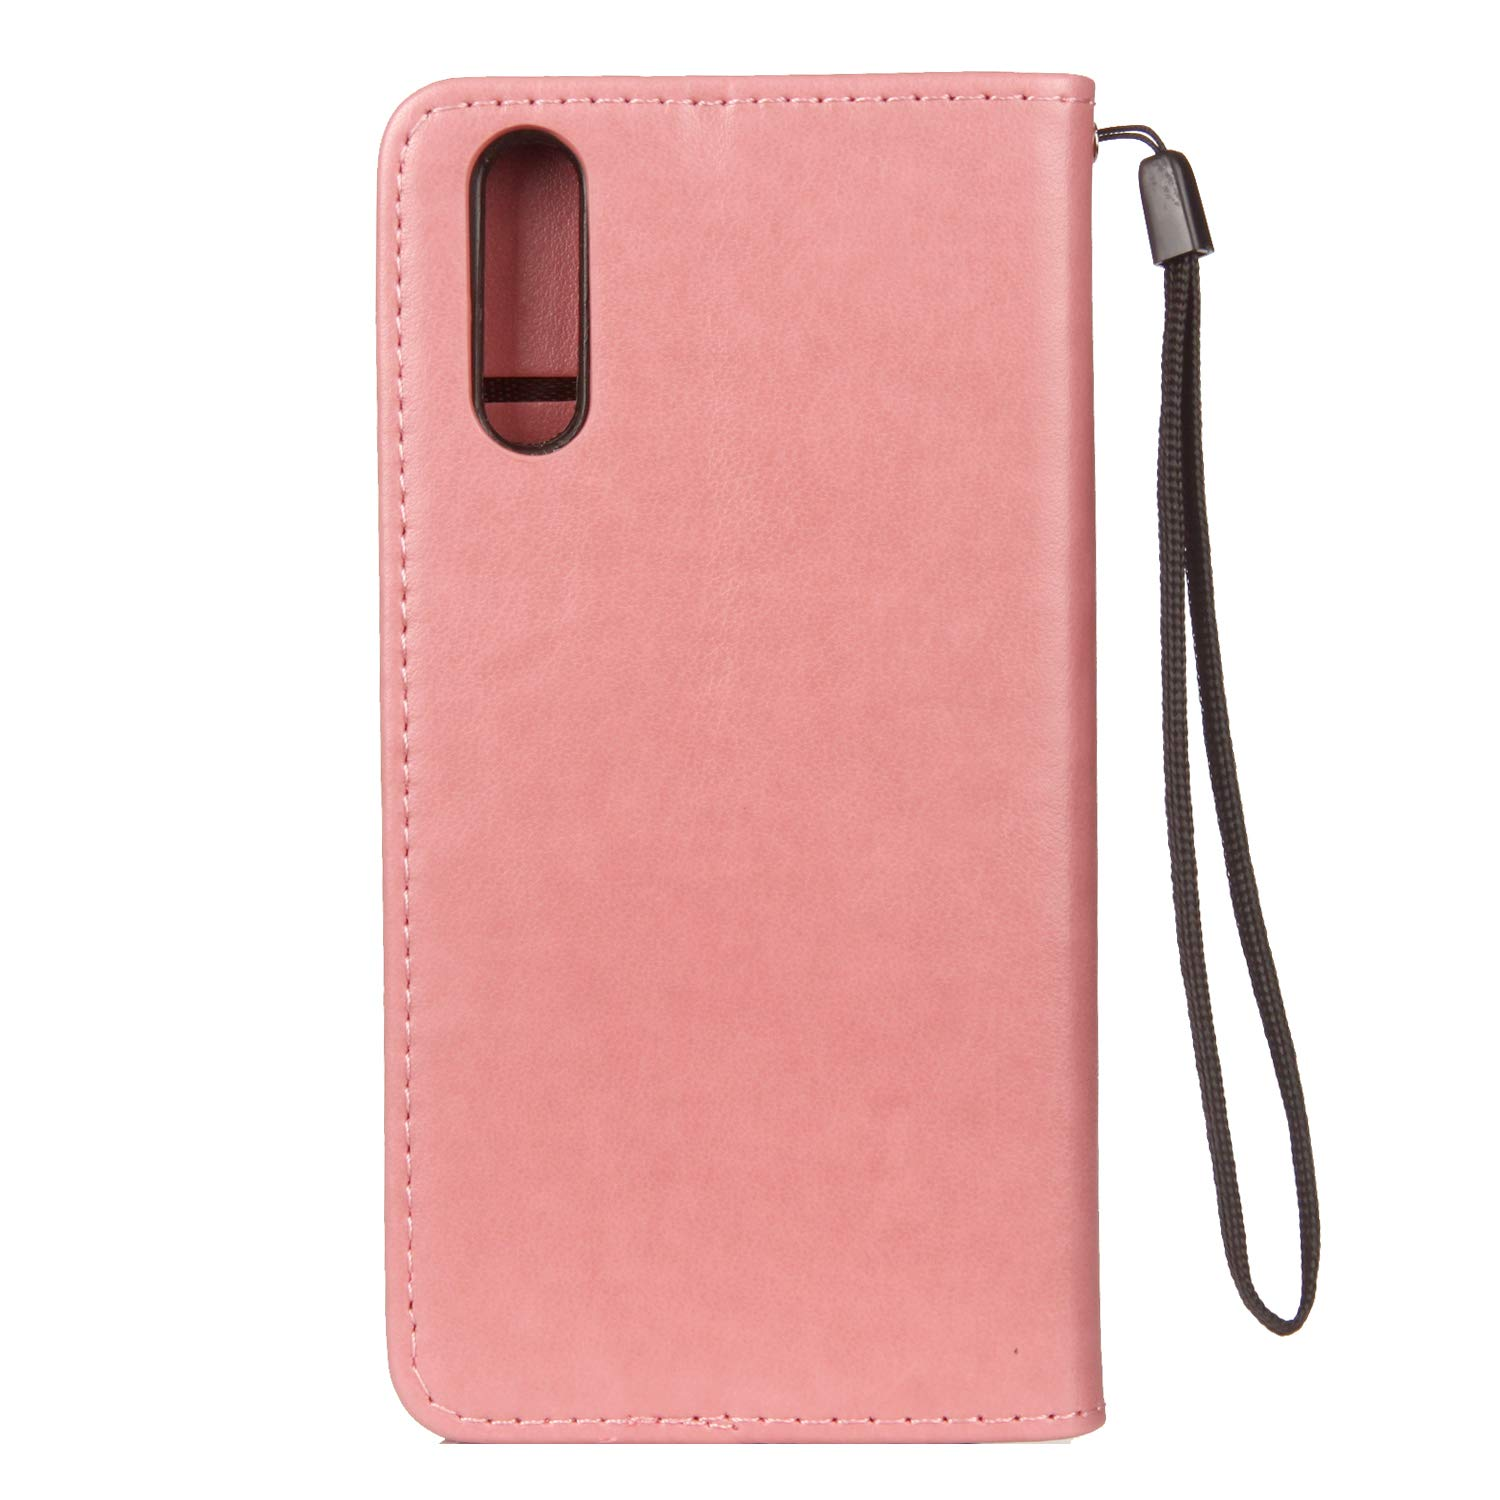 Ostop Huawei P20 Wallet Case,Purple PU Leather Case,Cute Cat Love Fish Embossed Printed Stand Purse Cover with Credit Card Slots Magnetic Flip Full Body Protection Shell